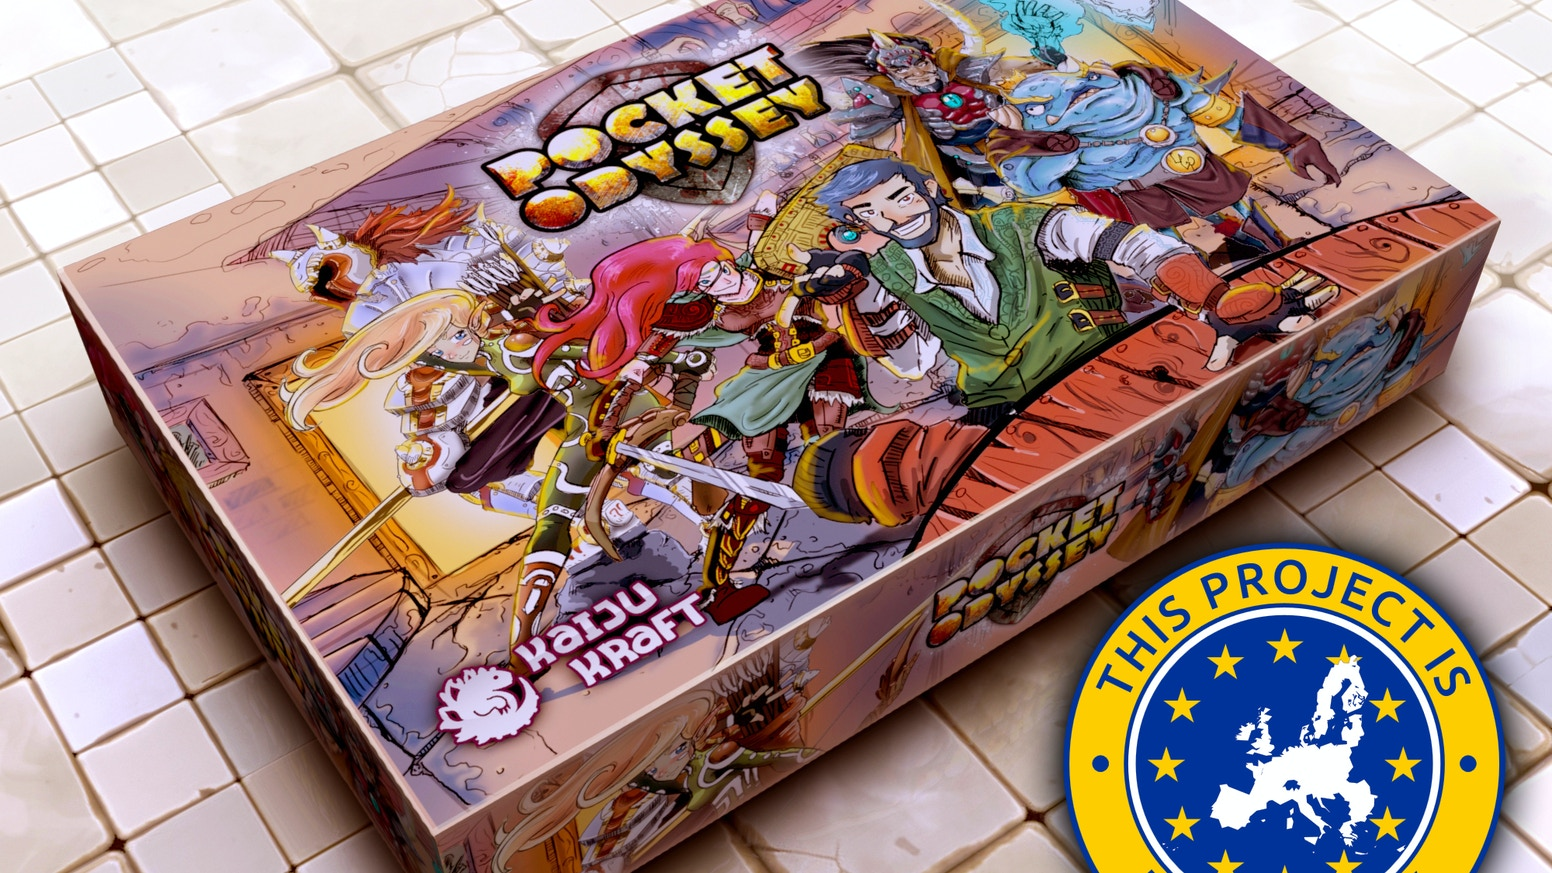 The first tabletop micro-RPG ever! No pen and paper needed just devilishly charming wit and an adventurous spirit!